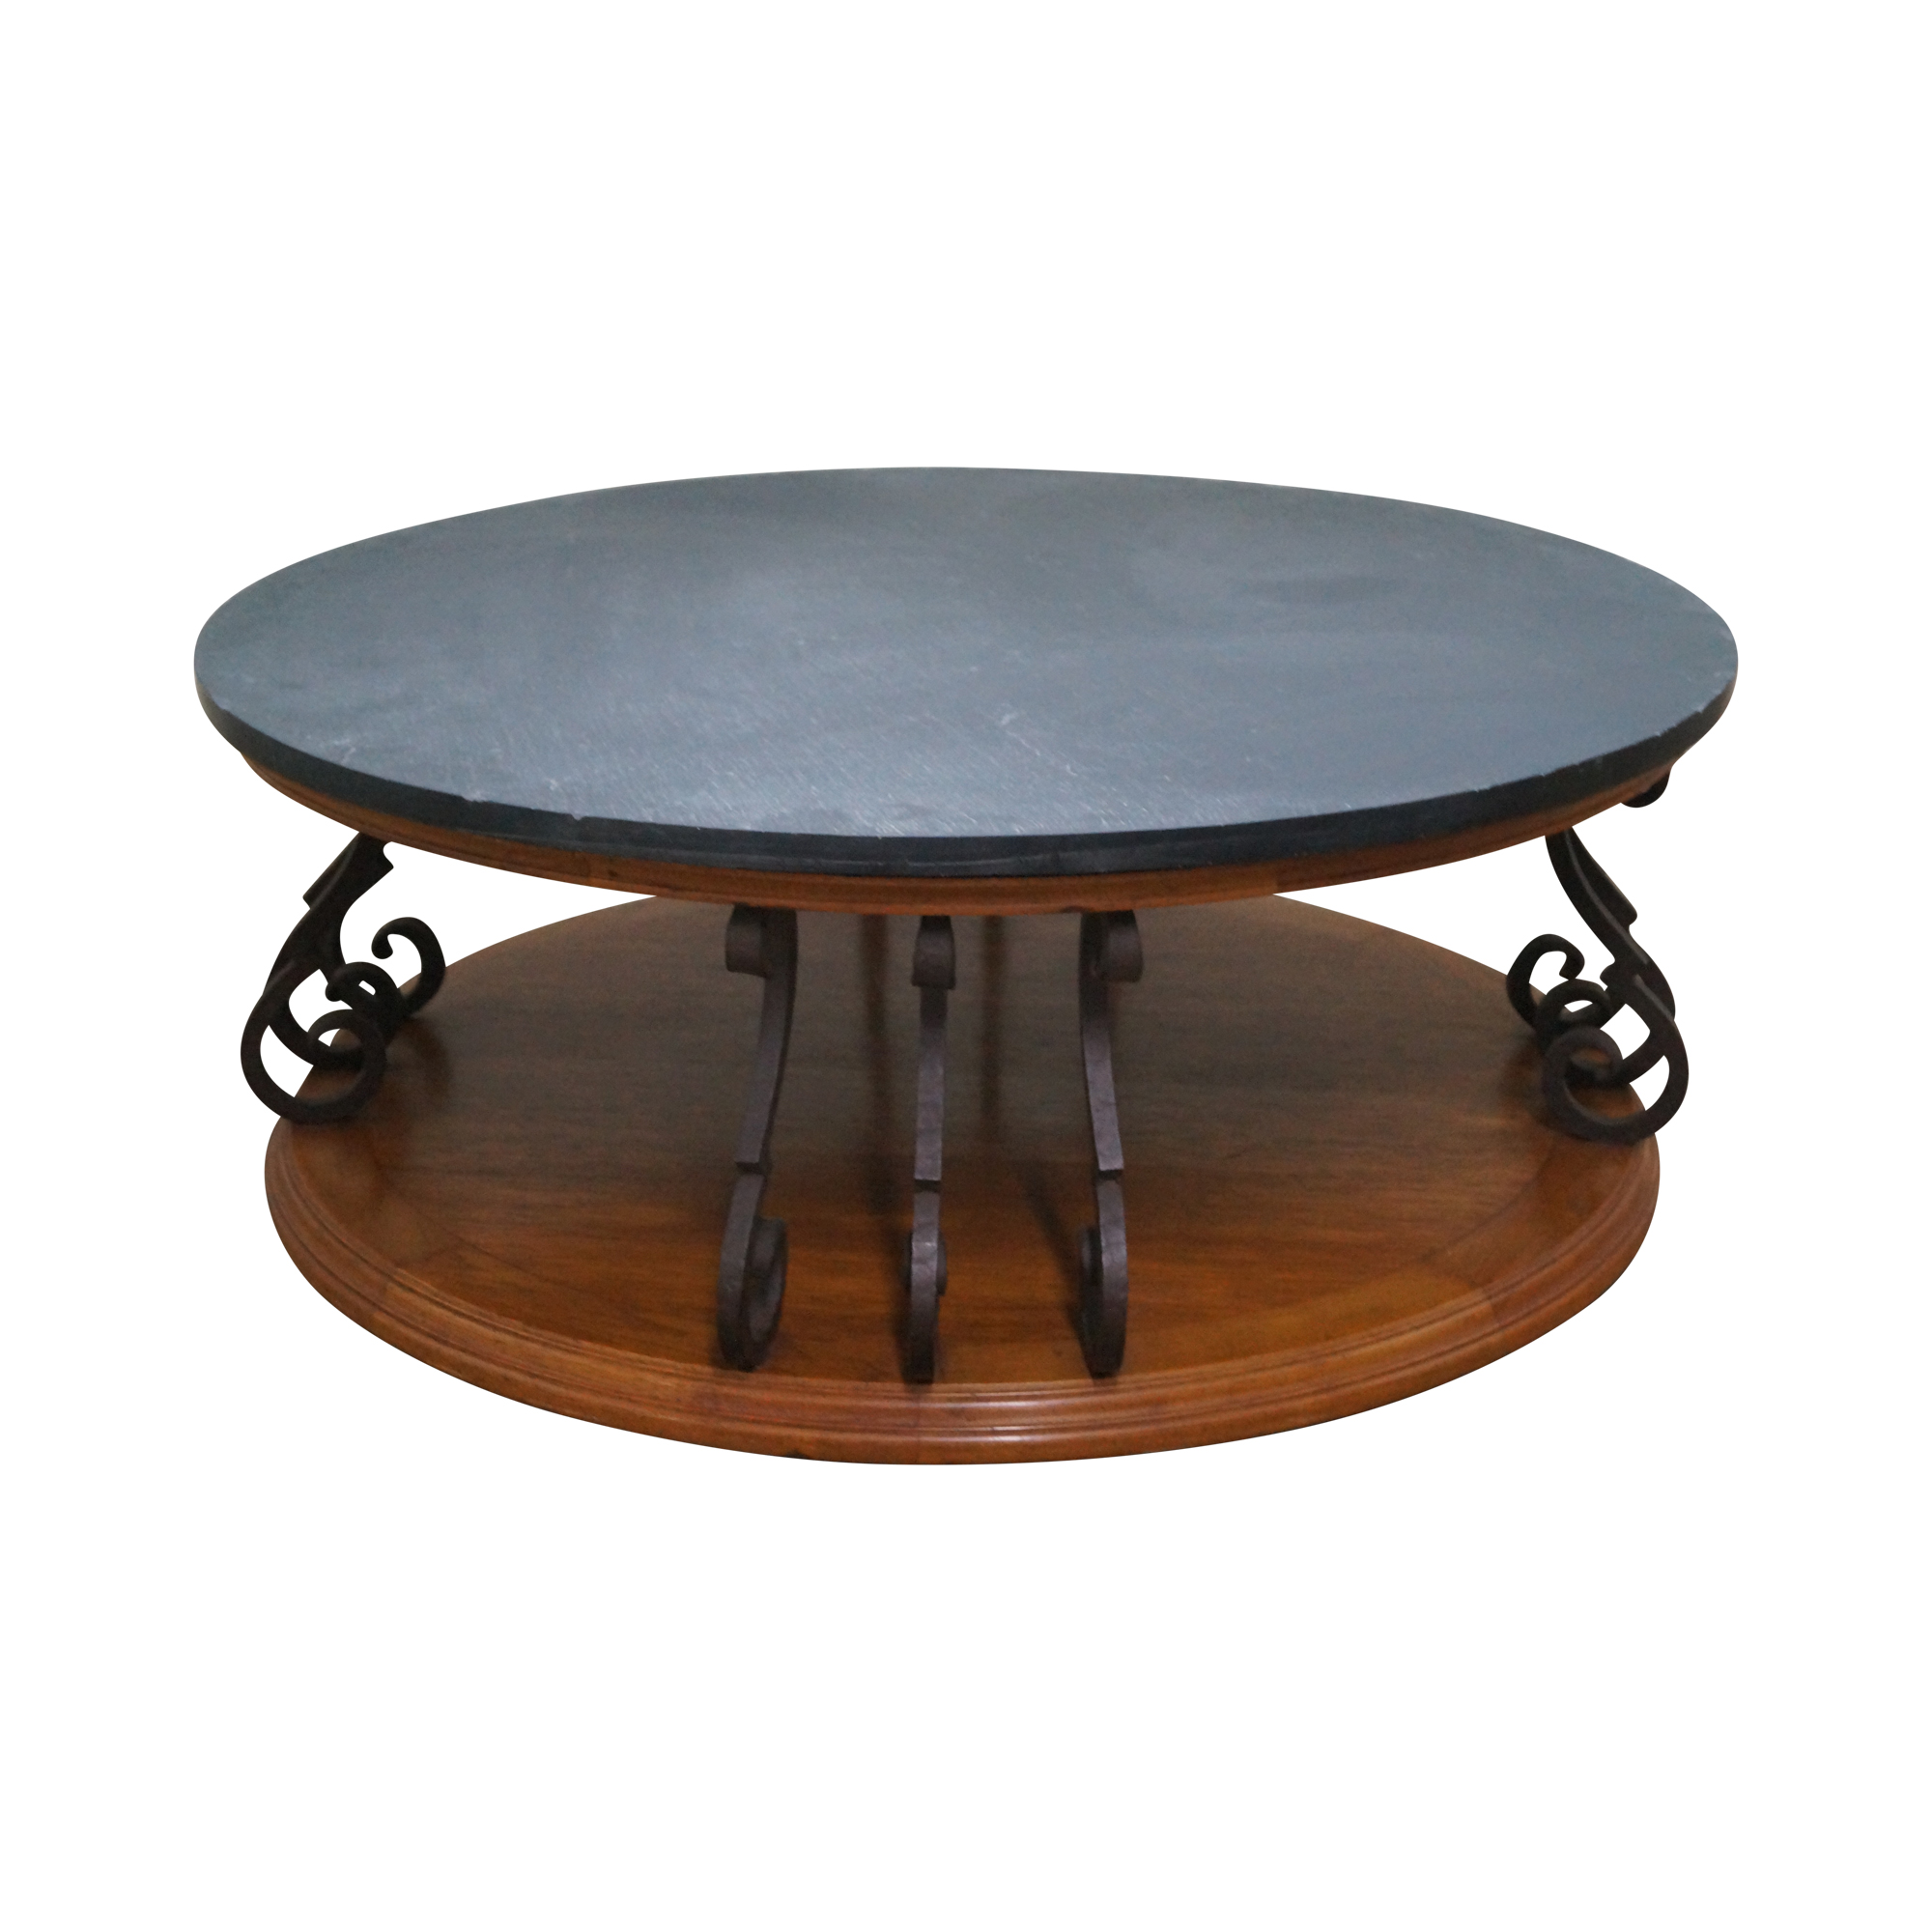 Heritage Large Round Mediterranean Style Slate Top Iron Support Coffee Table Age X2f Country Of Origin Approx 45 Coffee Table Slate Top Coffee Table Table [ 2000 x 2000 Pixel ]